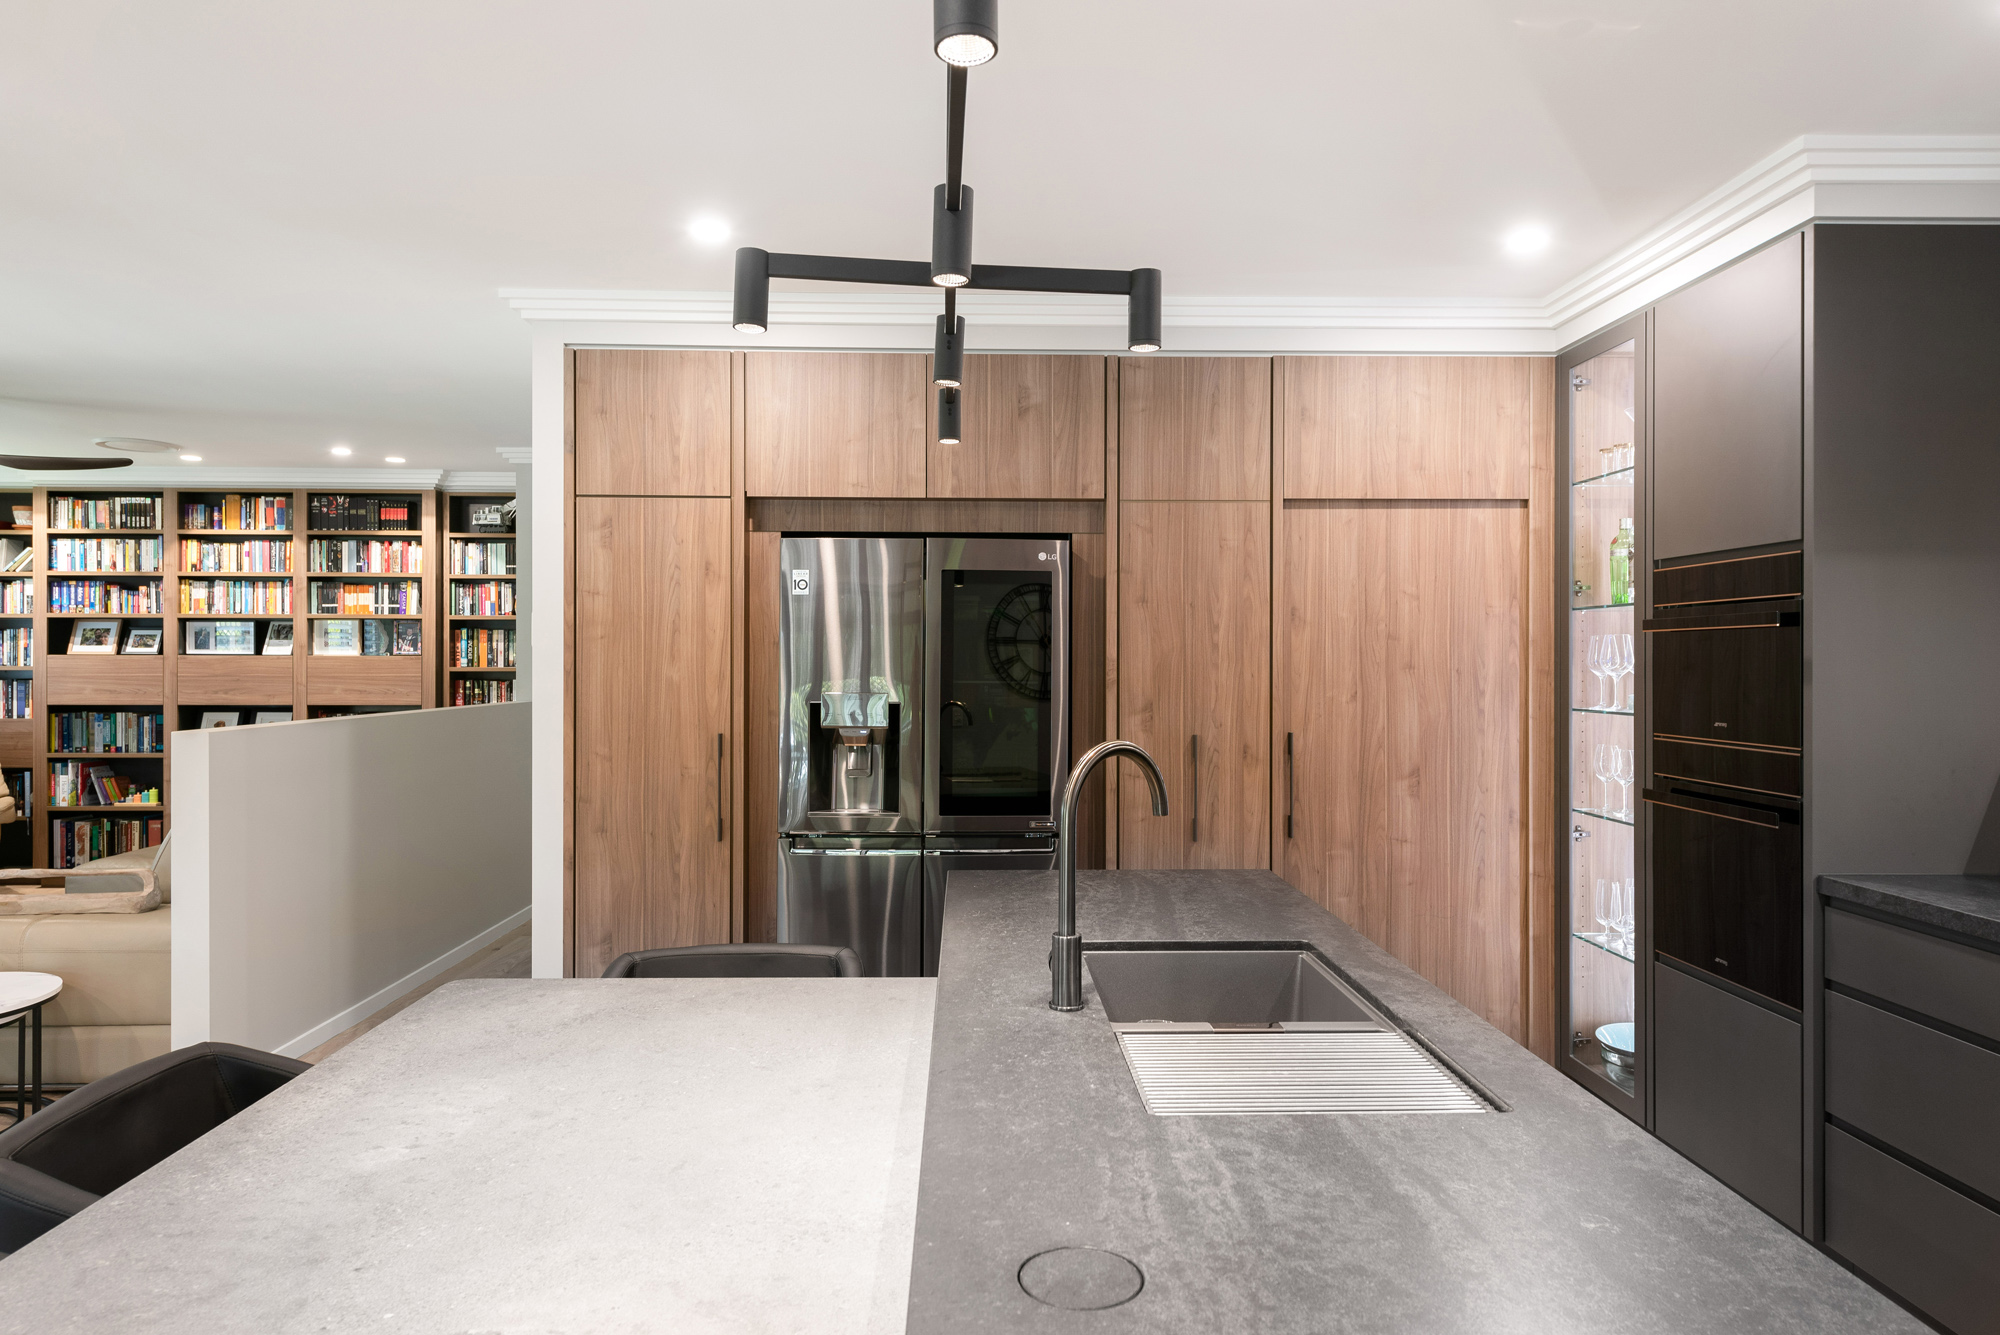 Modern industrial style kitchen island bench with concrete benchtops, woodgrain pantry wall, black french door fridge and black feature light